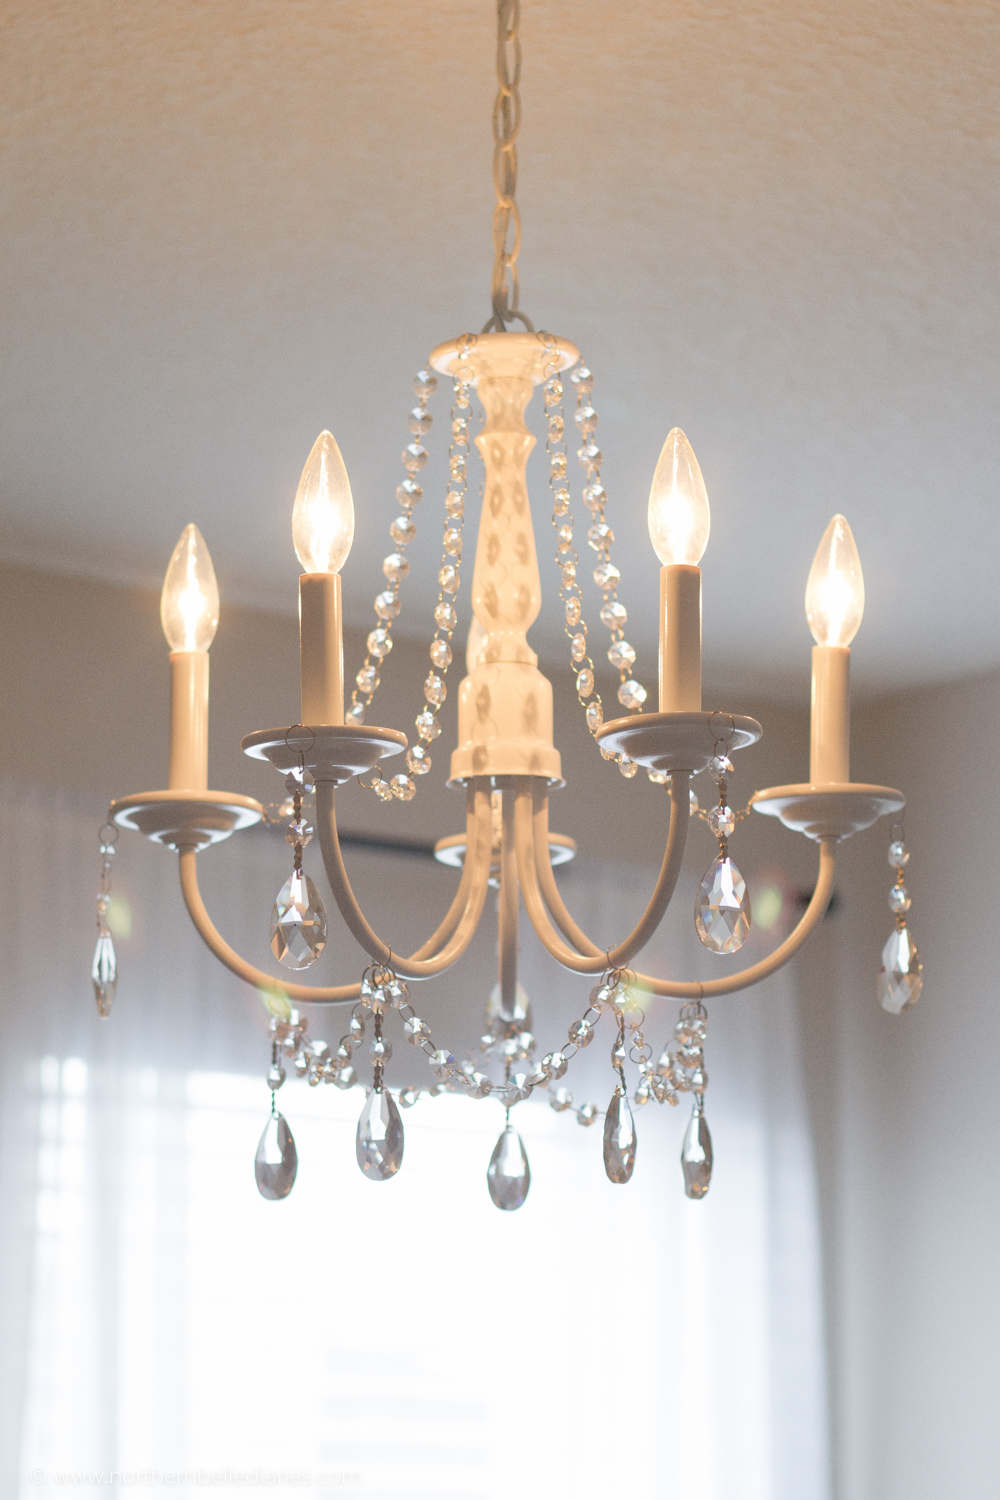 Diy crystal chandelier easy tutorial you can make your own diy crystal chandelier this site shows you how arubaitofo Choice Image